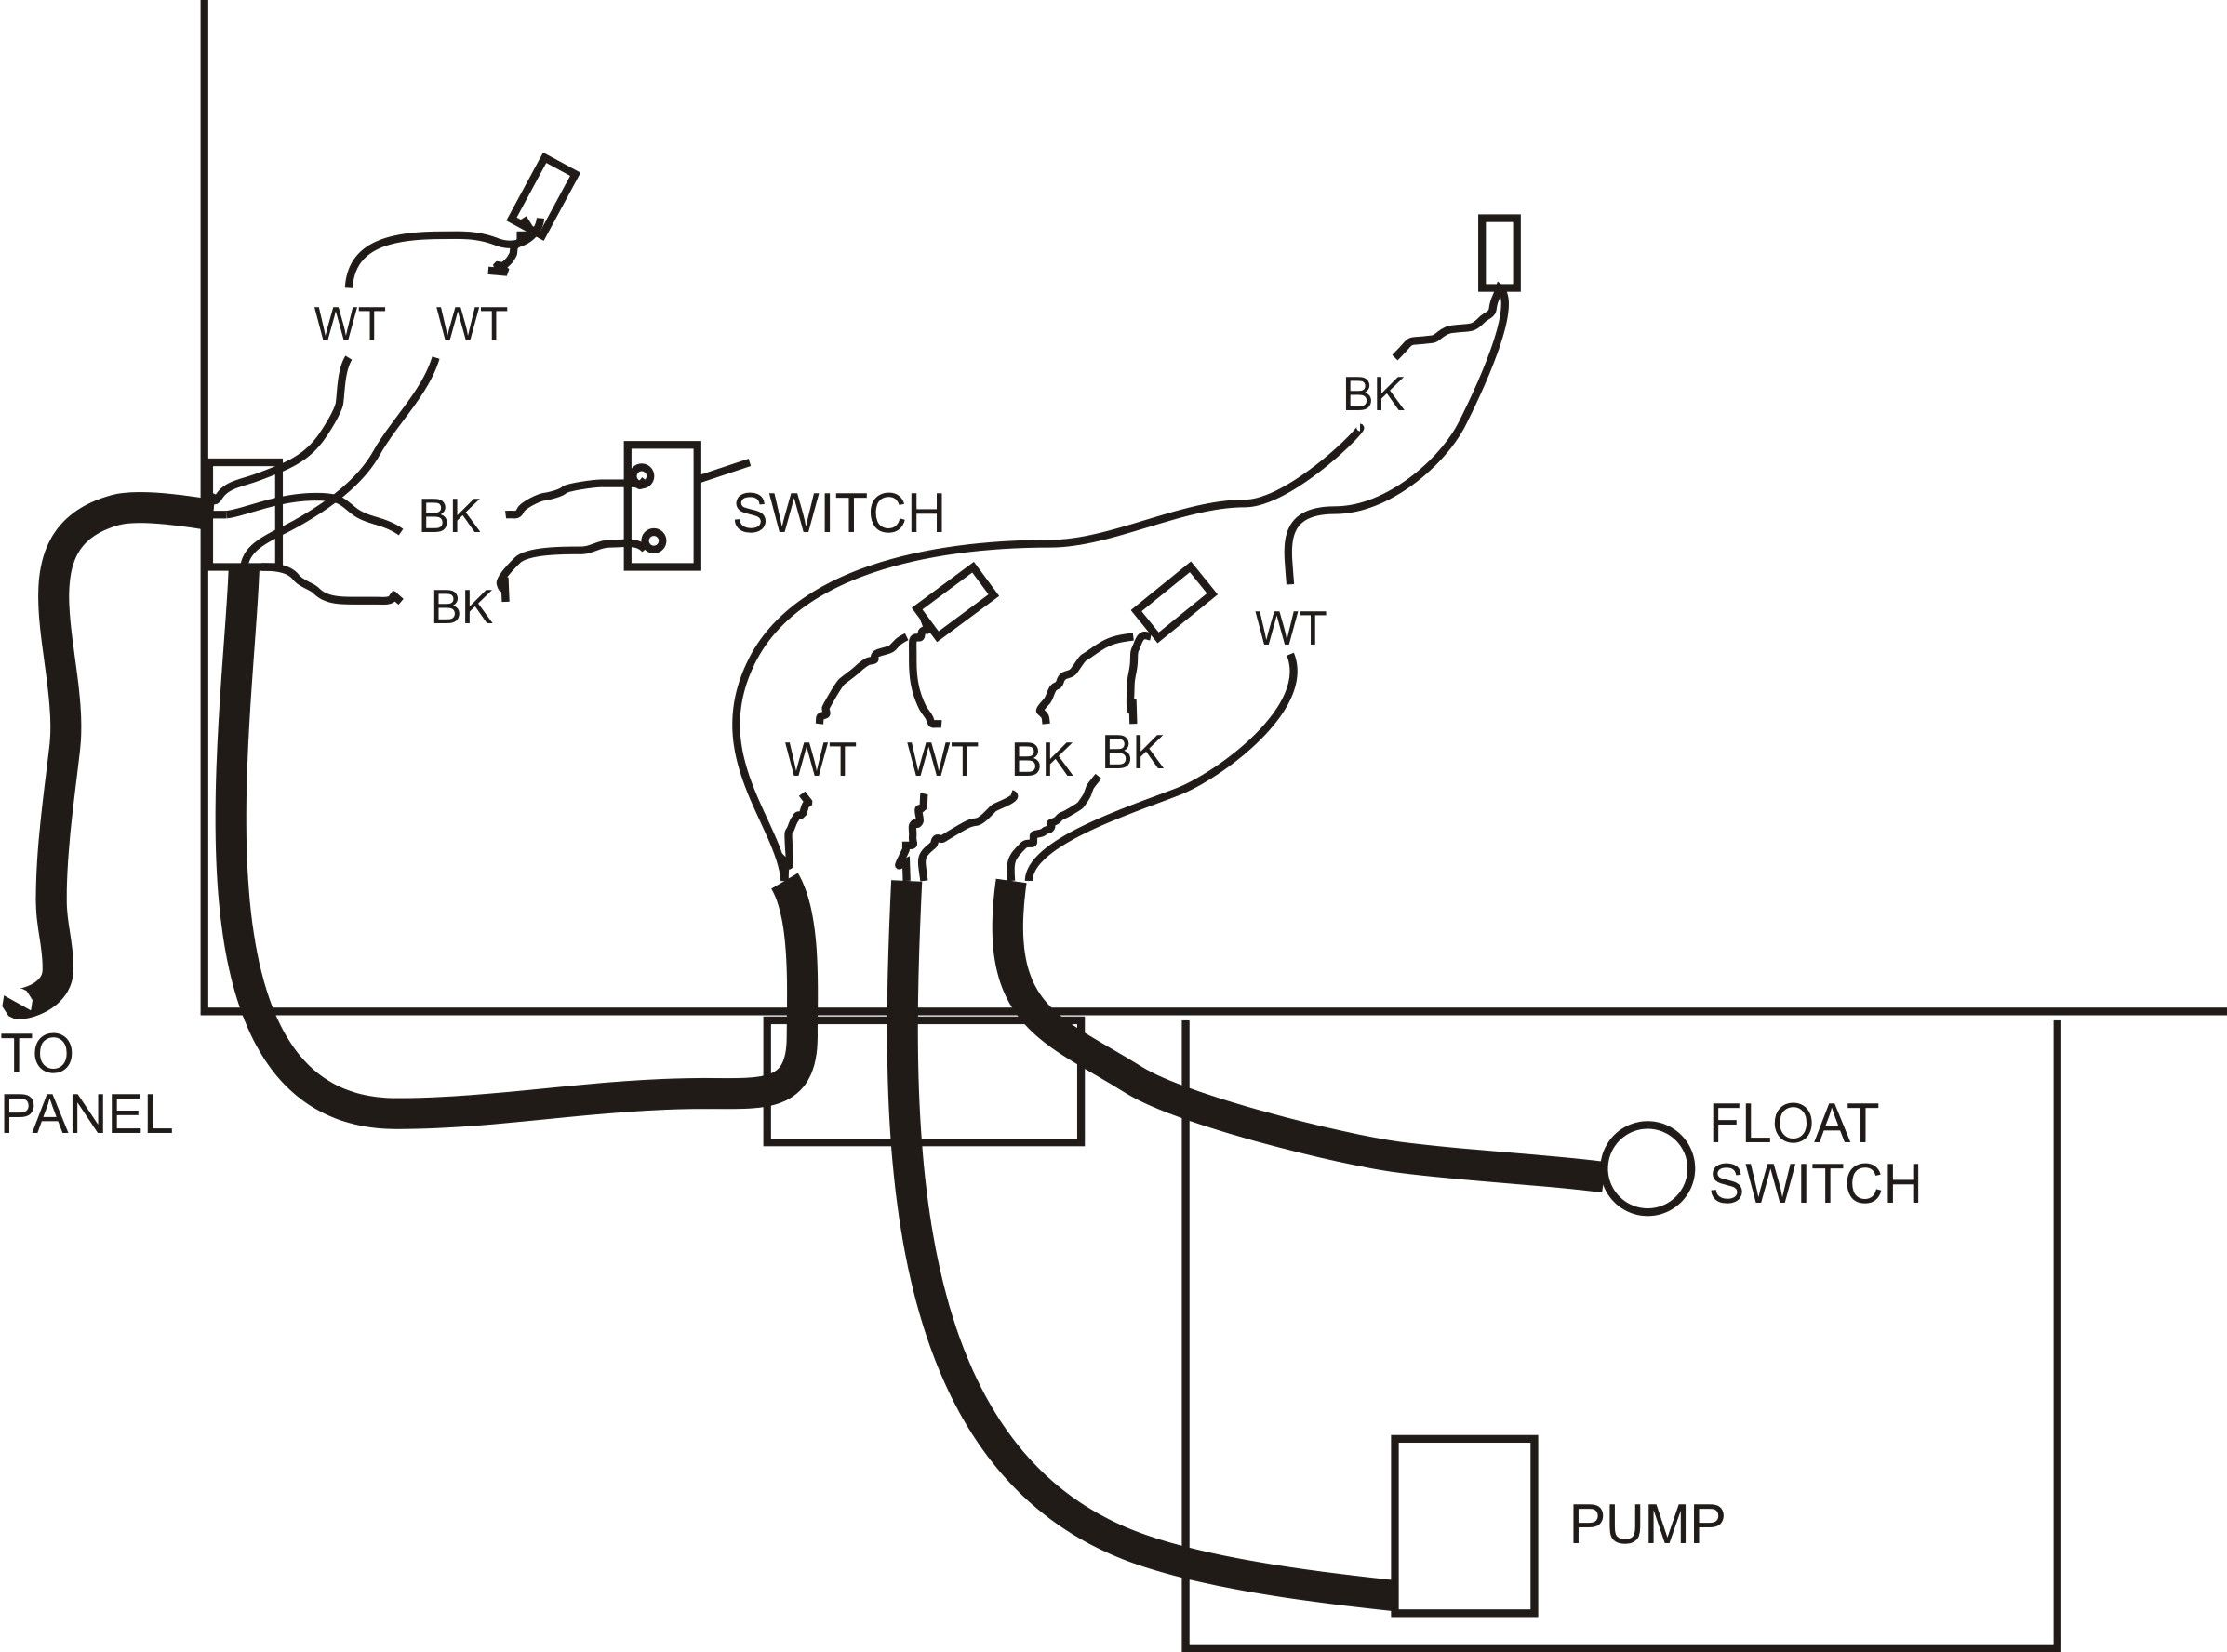 medium resolution of water well pump control box septic wiring diagram submersible wire septic tank pump wiring diagram septic pump wiring